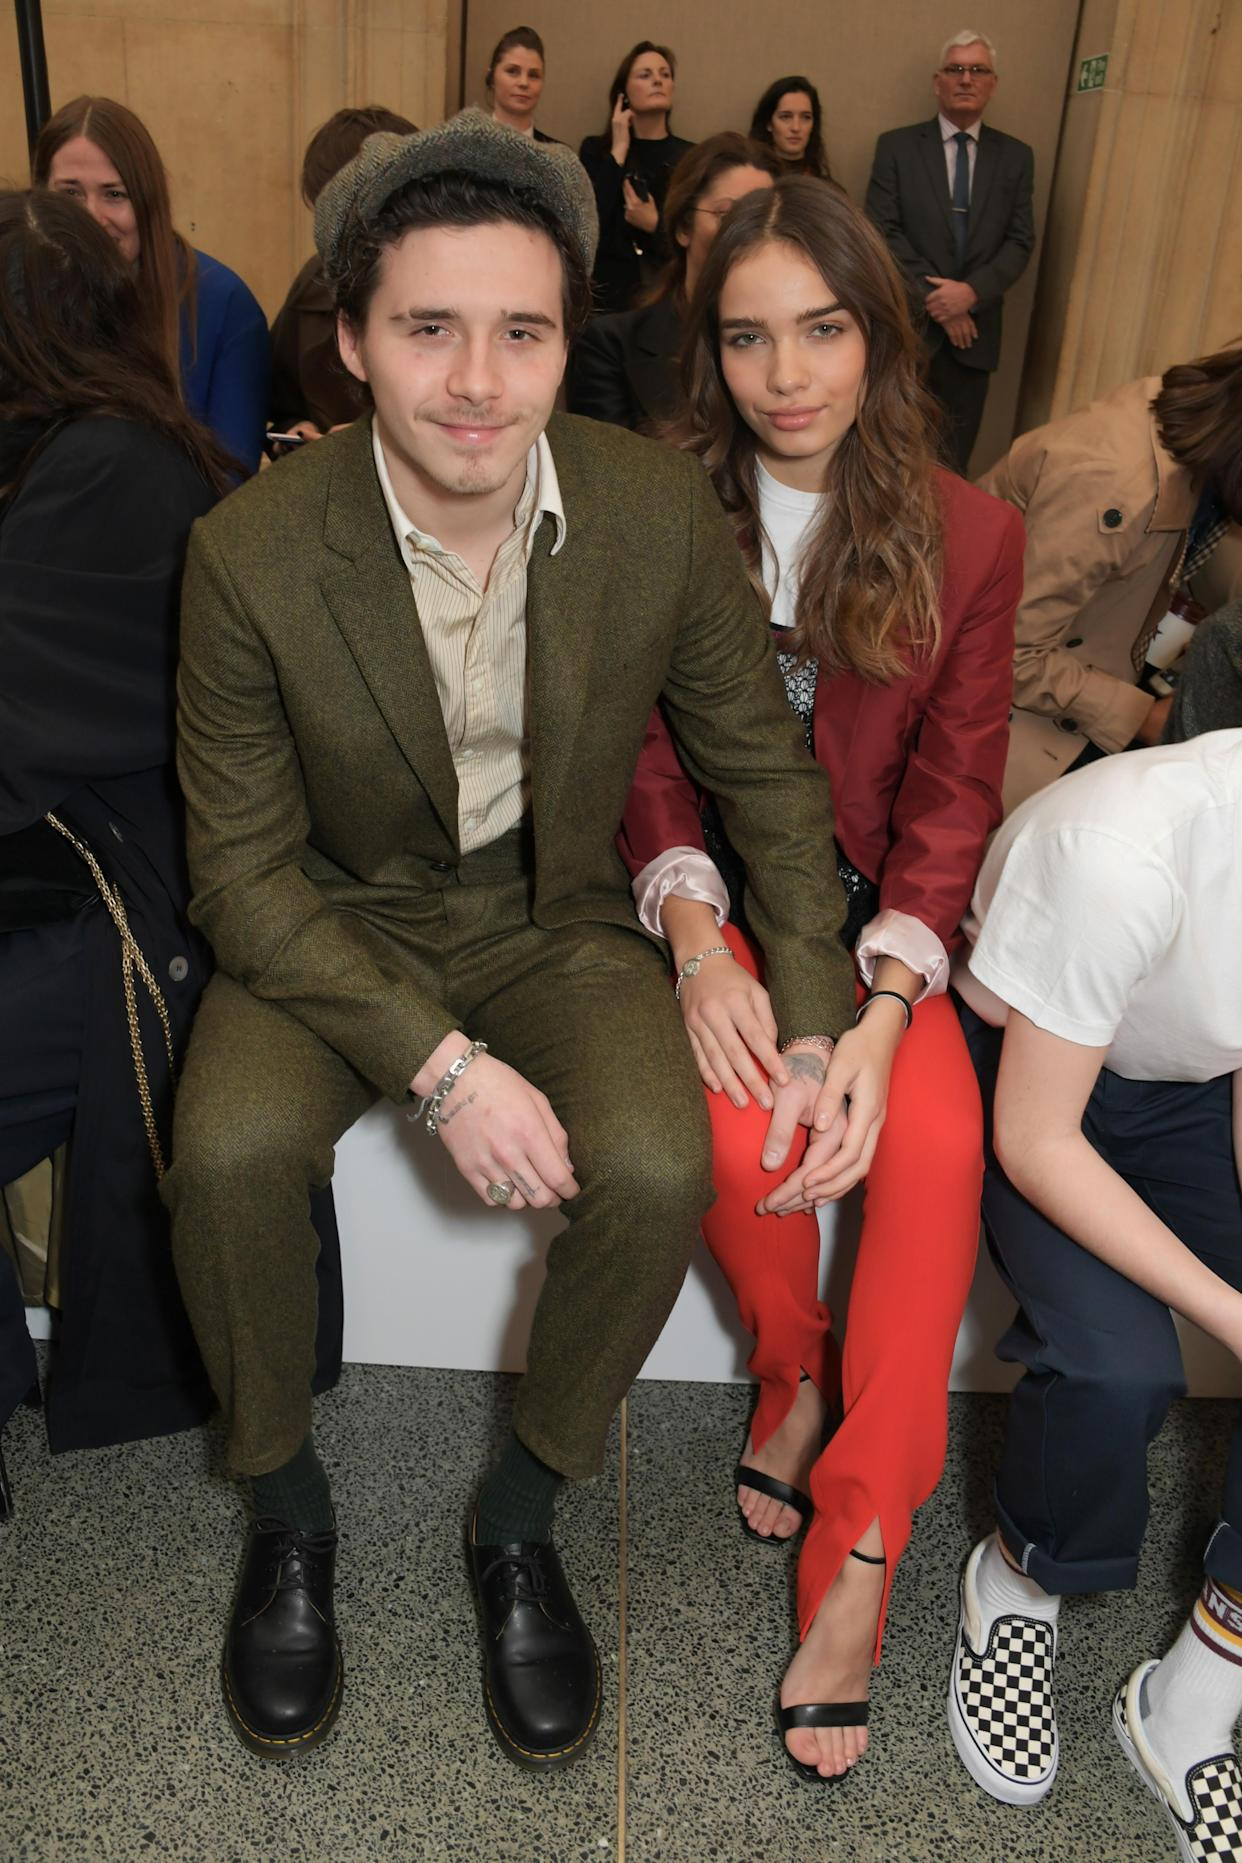 Brooklyn Beckham brought along his girlfriend Hana Cross to the family event [Photo: Getty]